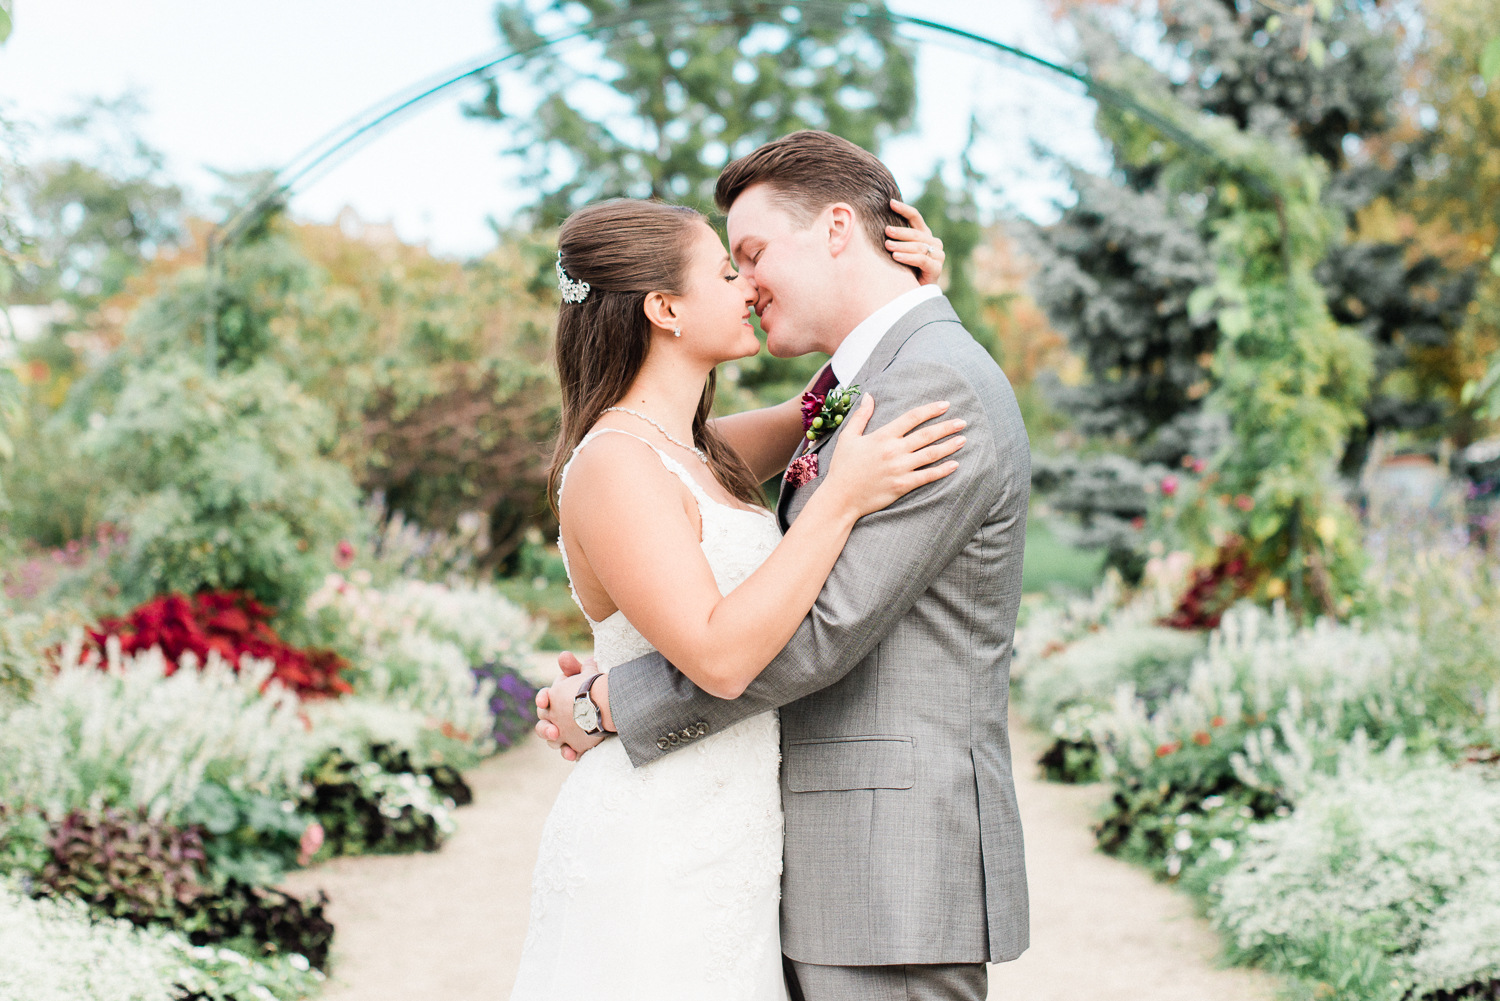 Brittany Bekas - Garfield Park Conservatory Chicago Wedding Photos-11.jpg